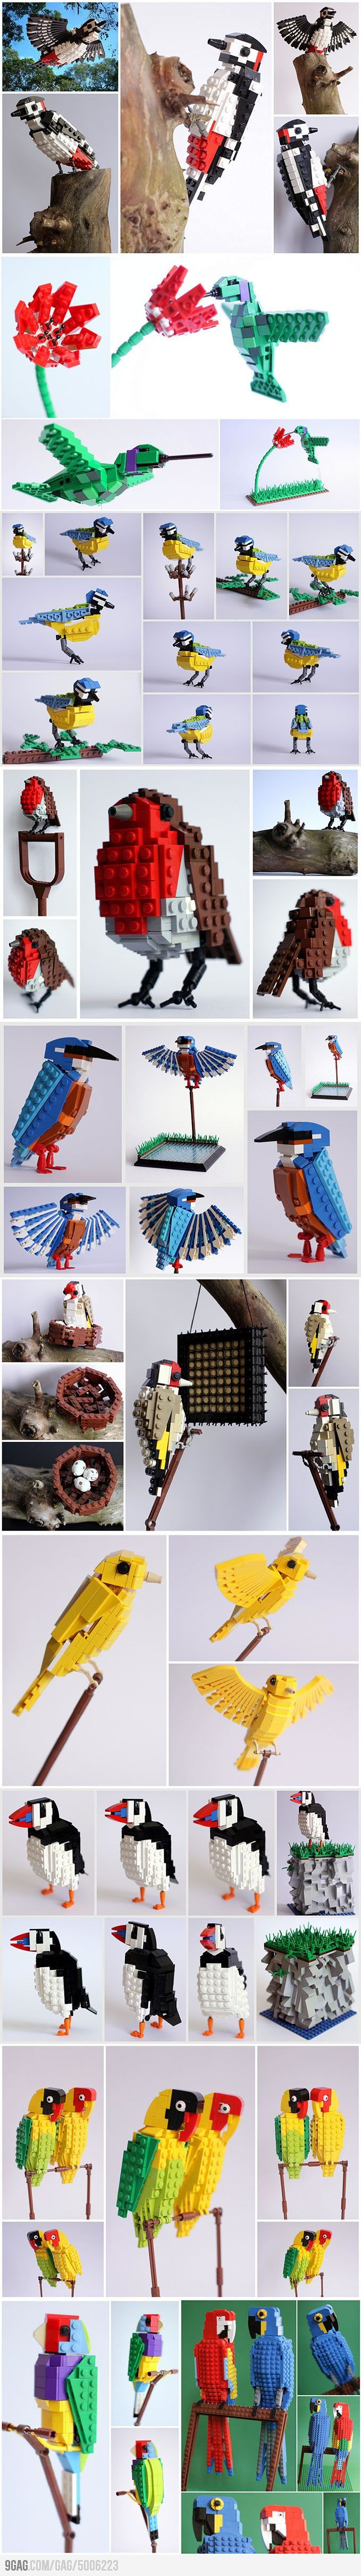 Awesome LEGO Birds - finally something that makes me respect Legos again.